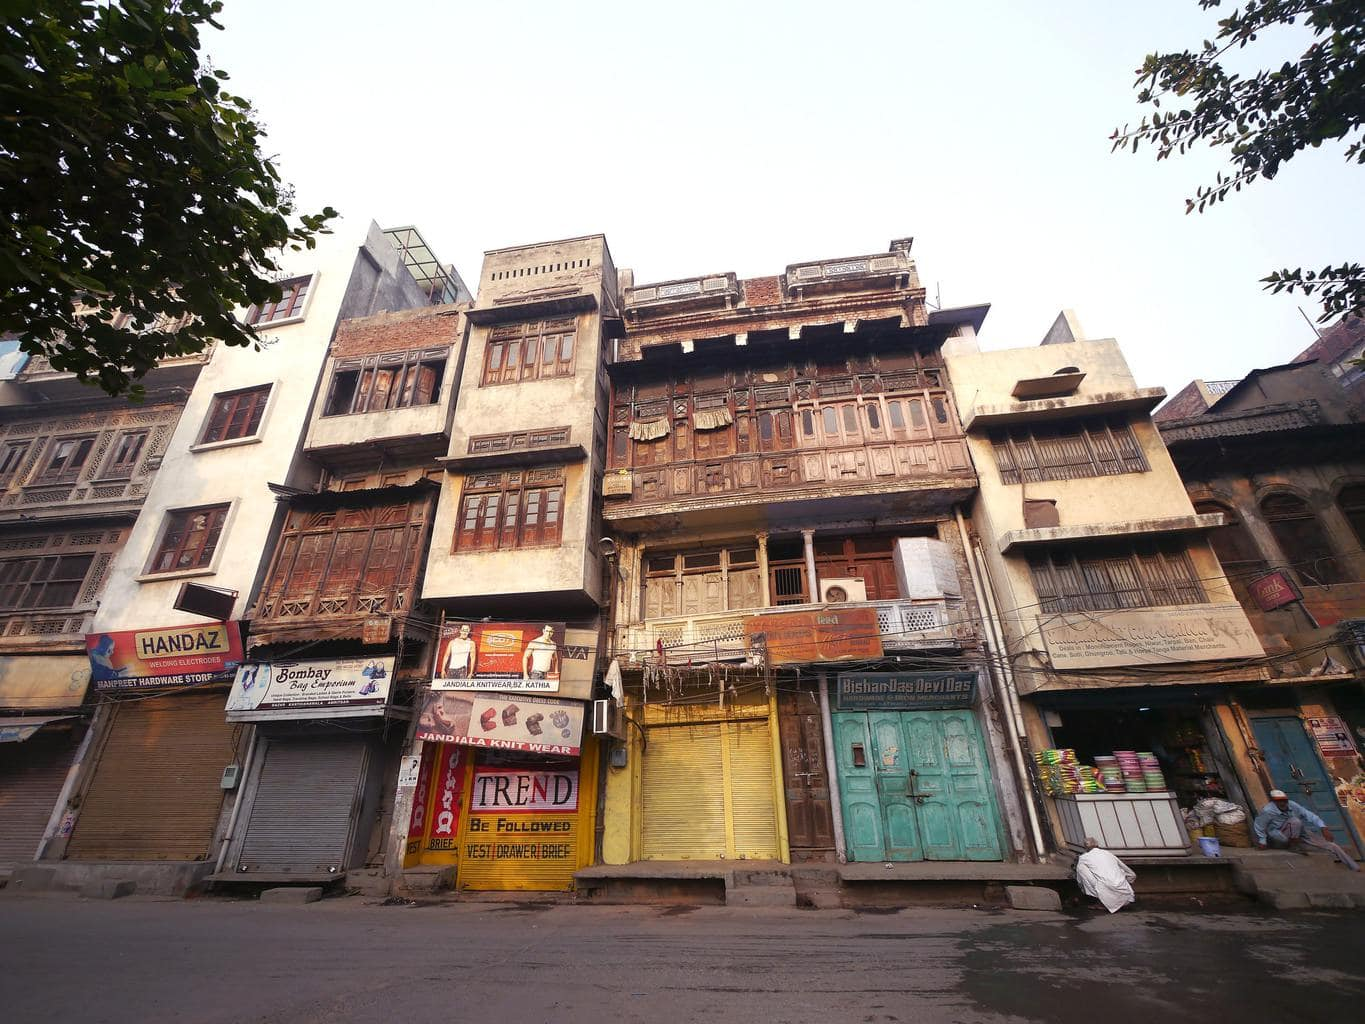 Architecture and heritage in Amritsar